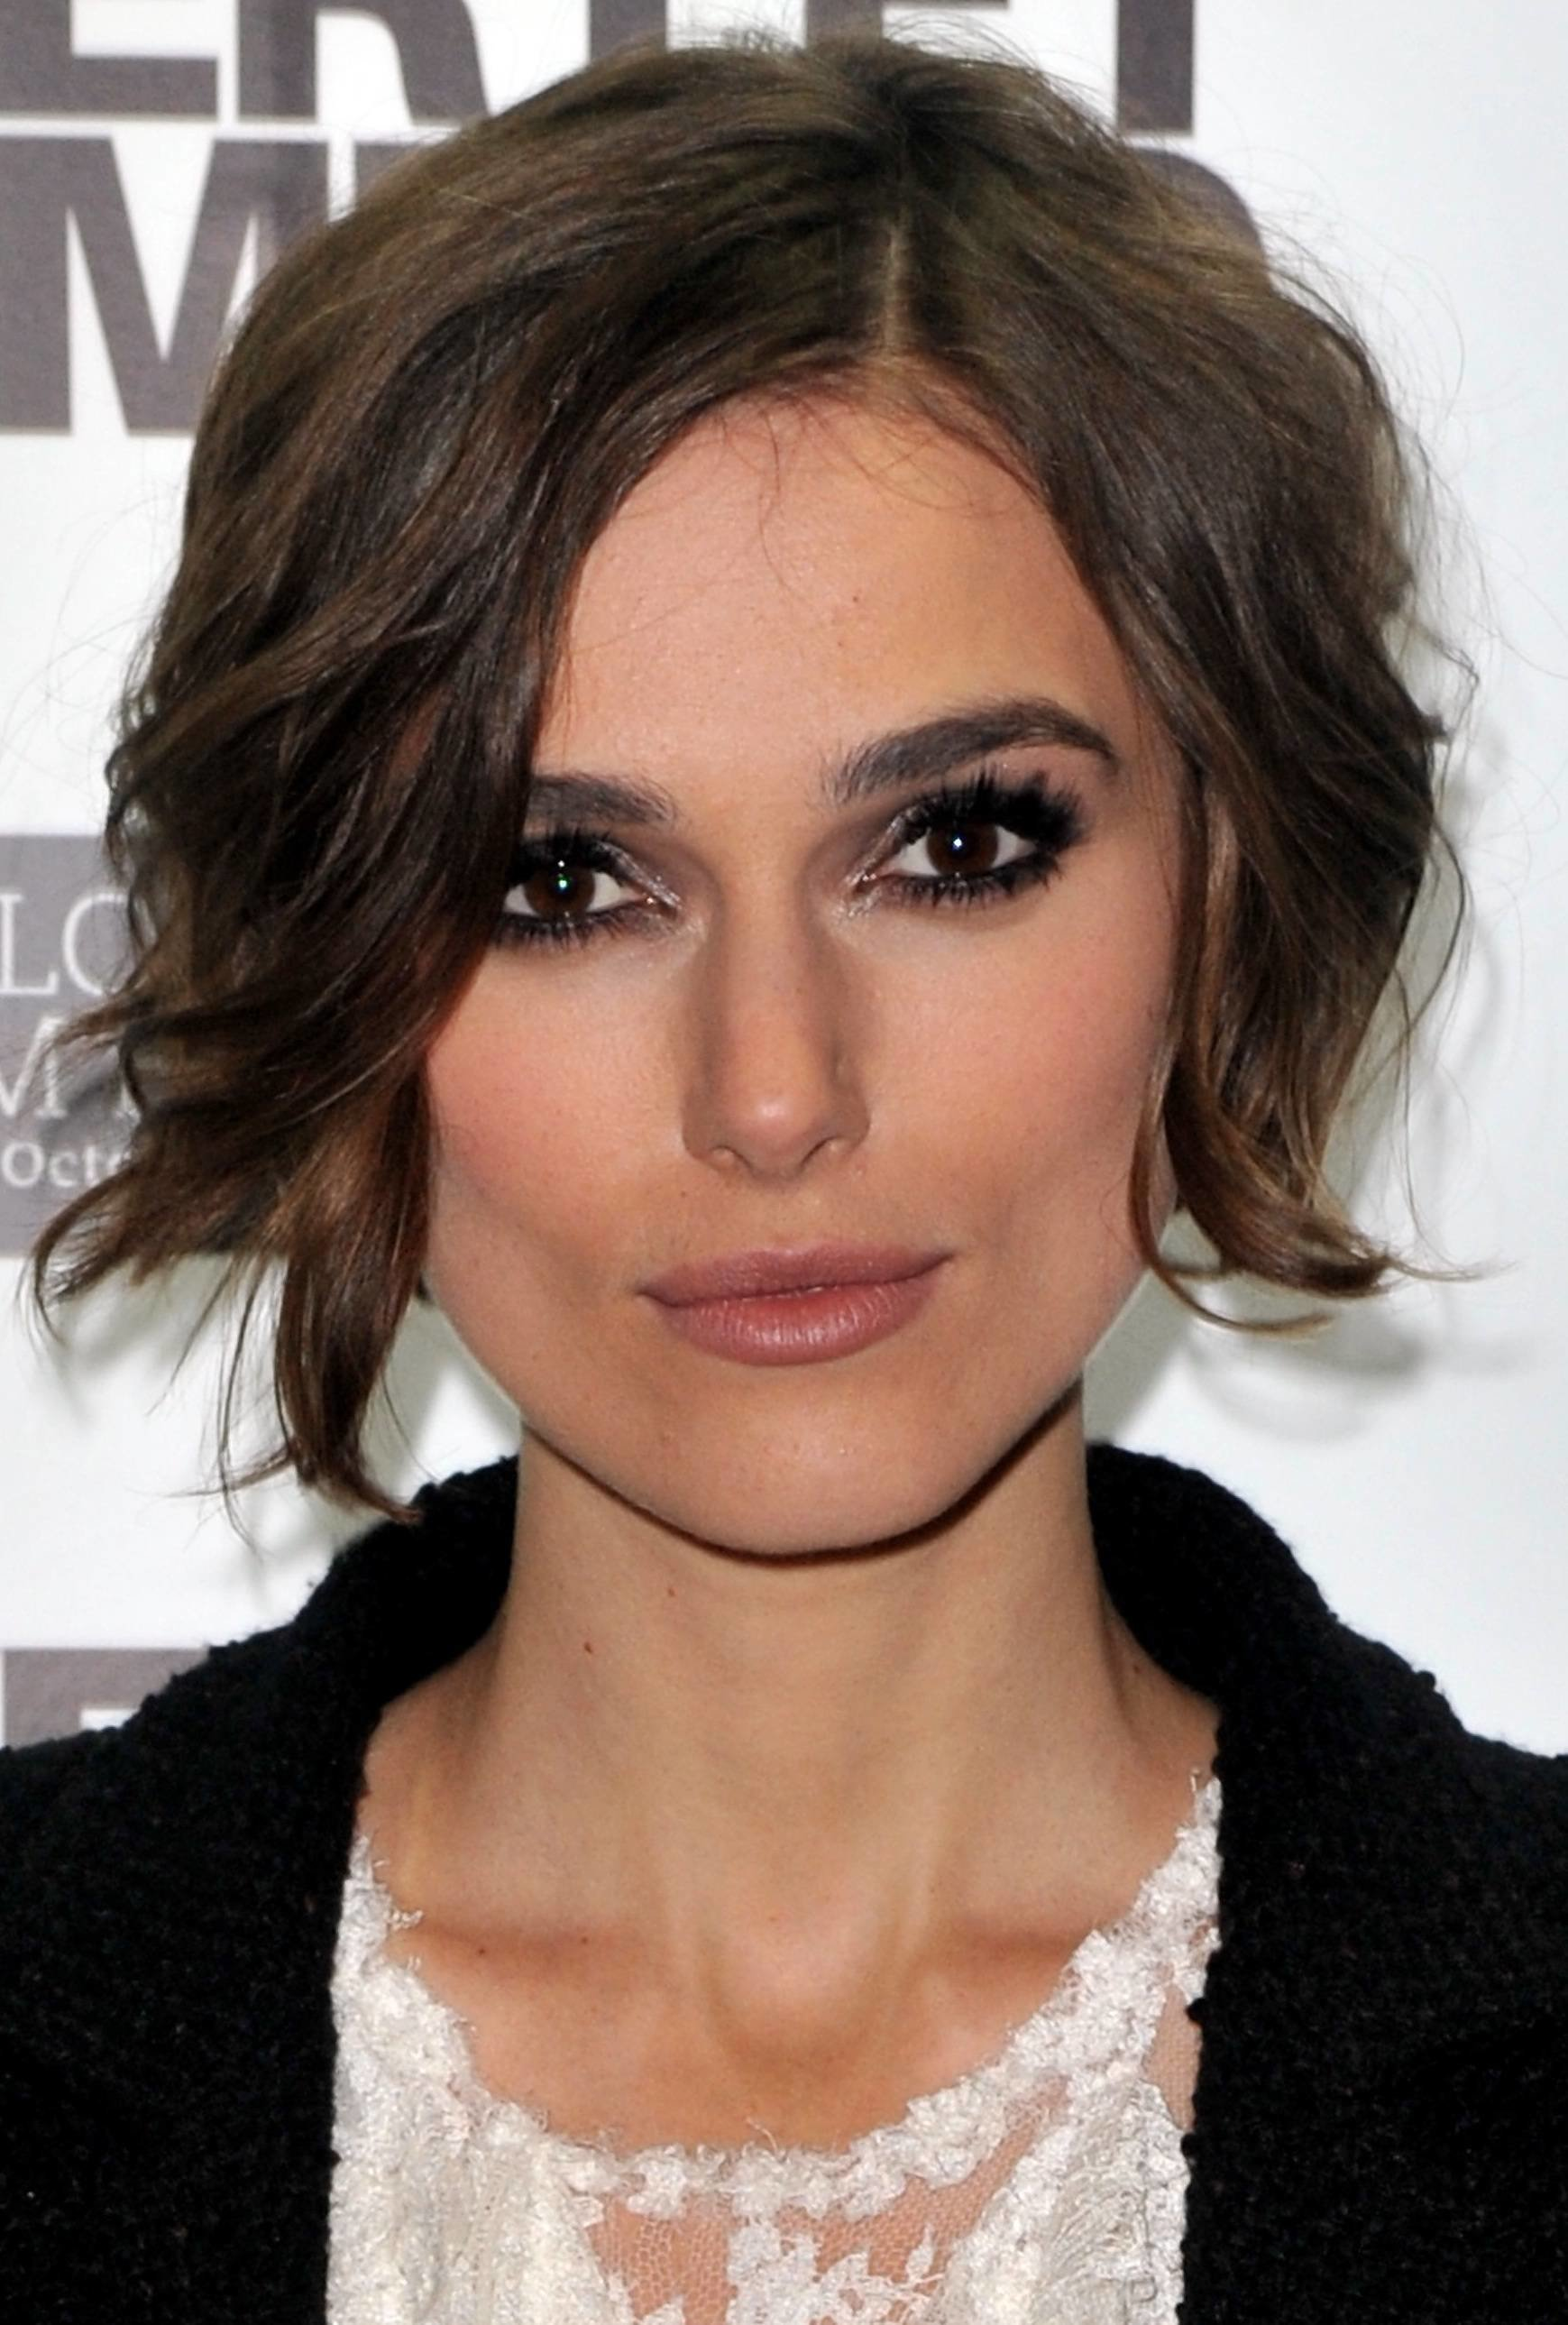 The Best Short Bob Hairstyles For Square Faces Hairstyle For Pictures